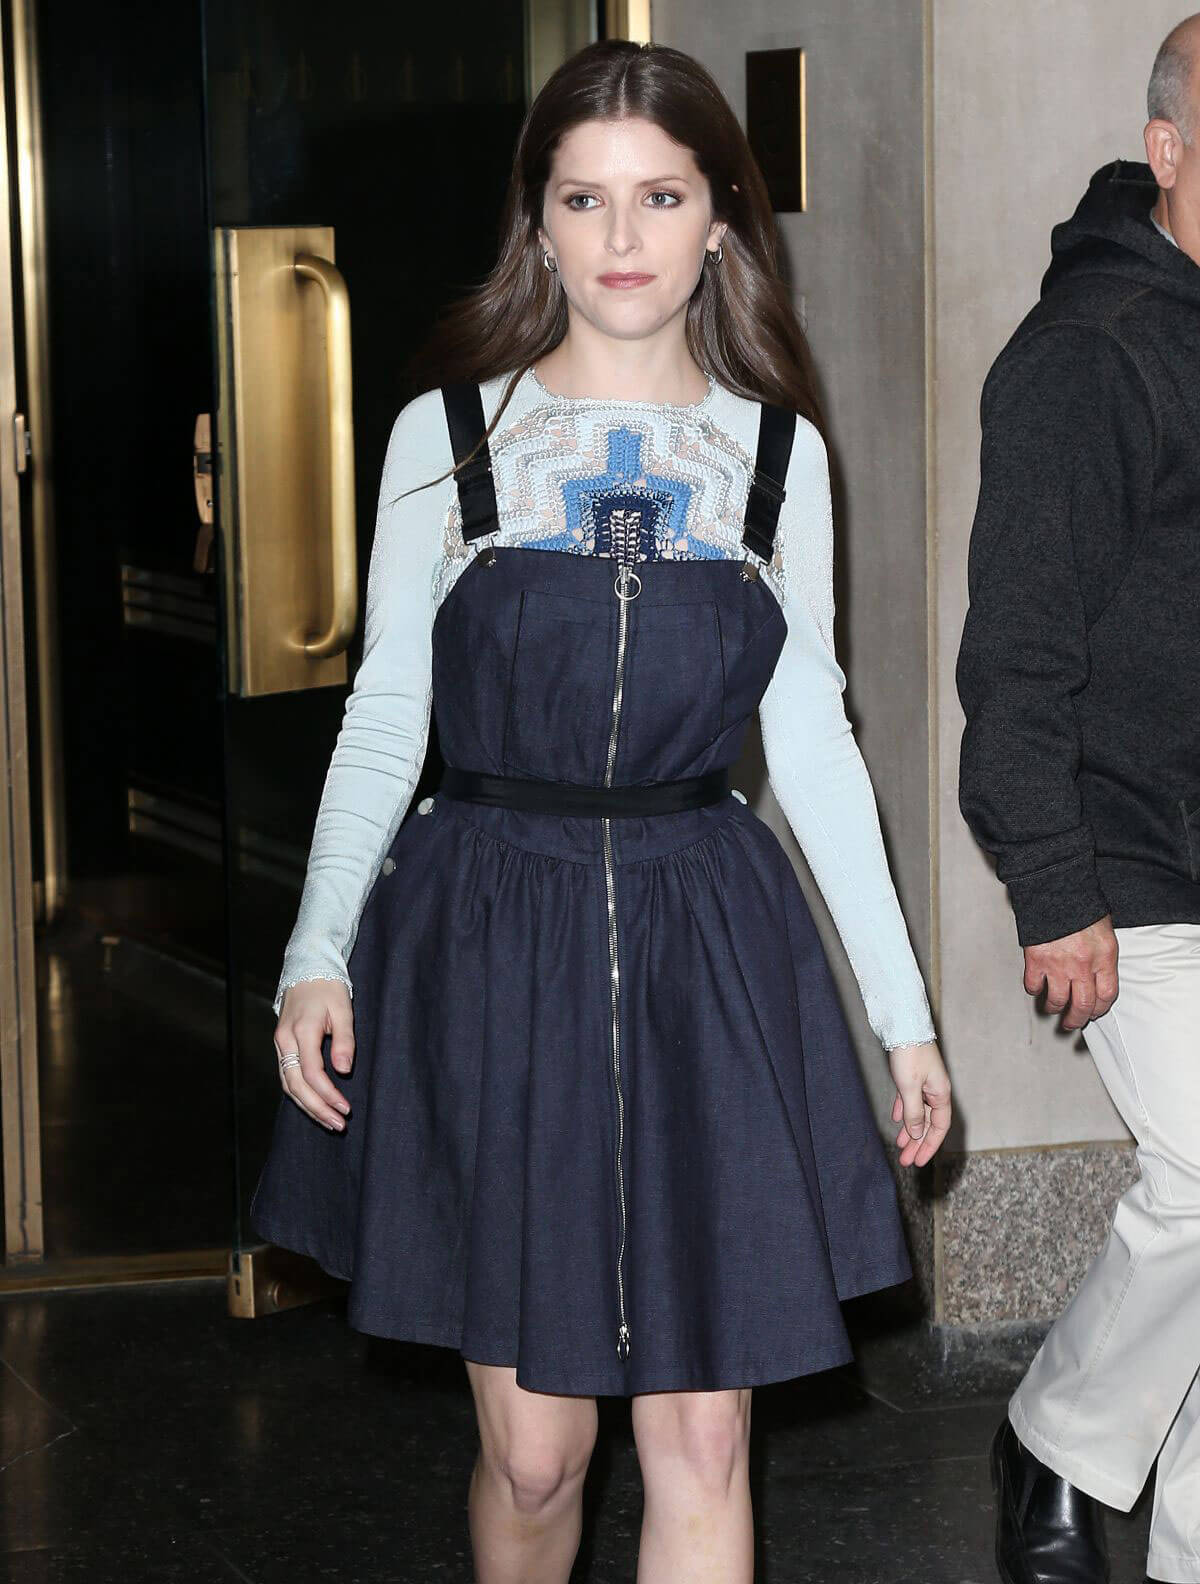 Anna Kendrick Stills Leaves Today Show in New York